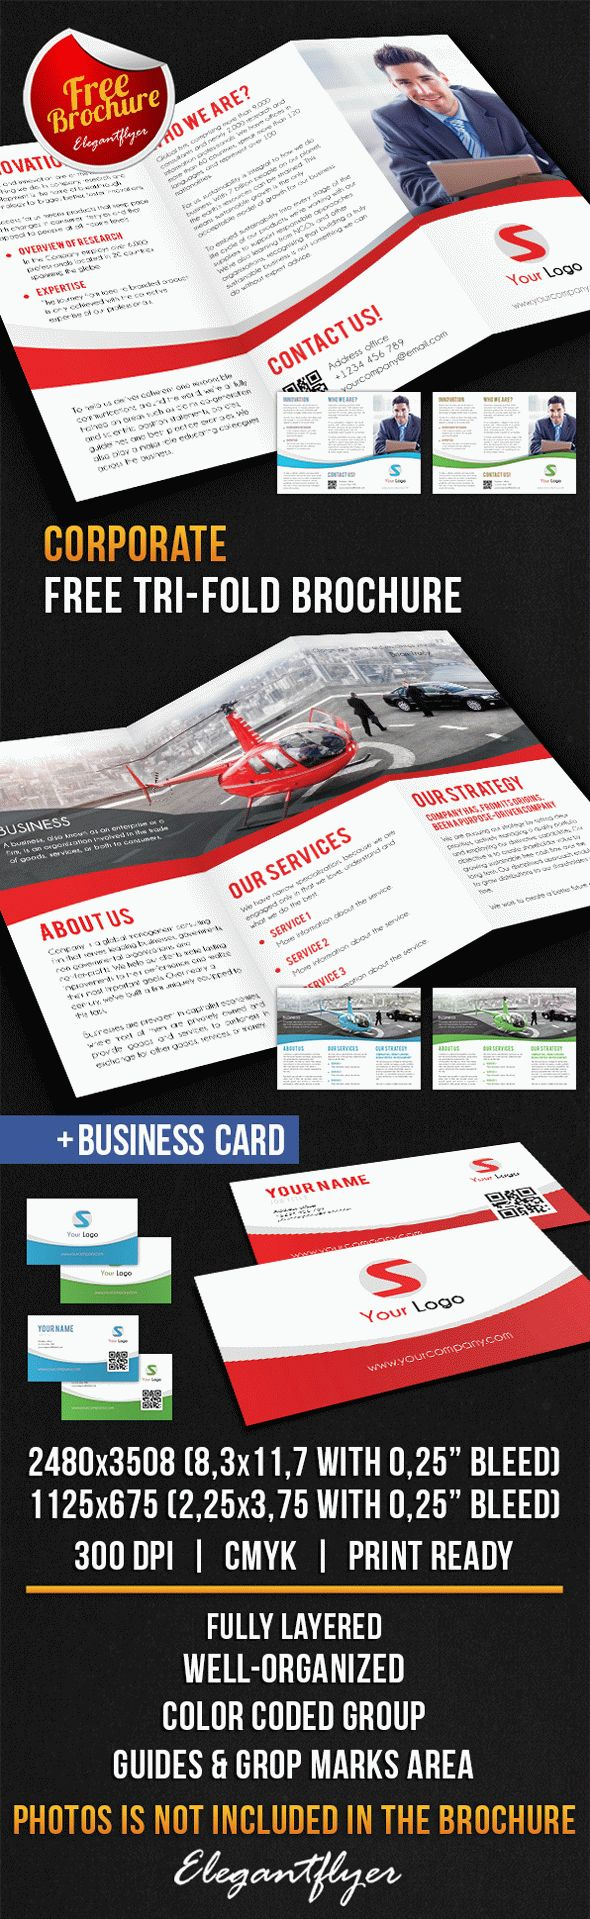 tri fold brochure photoshop template - corporate tri fold brochure free psd template by